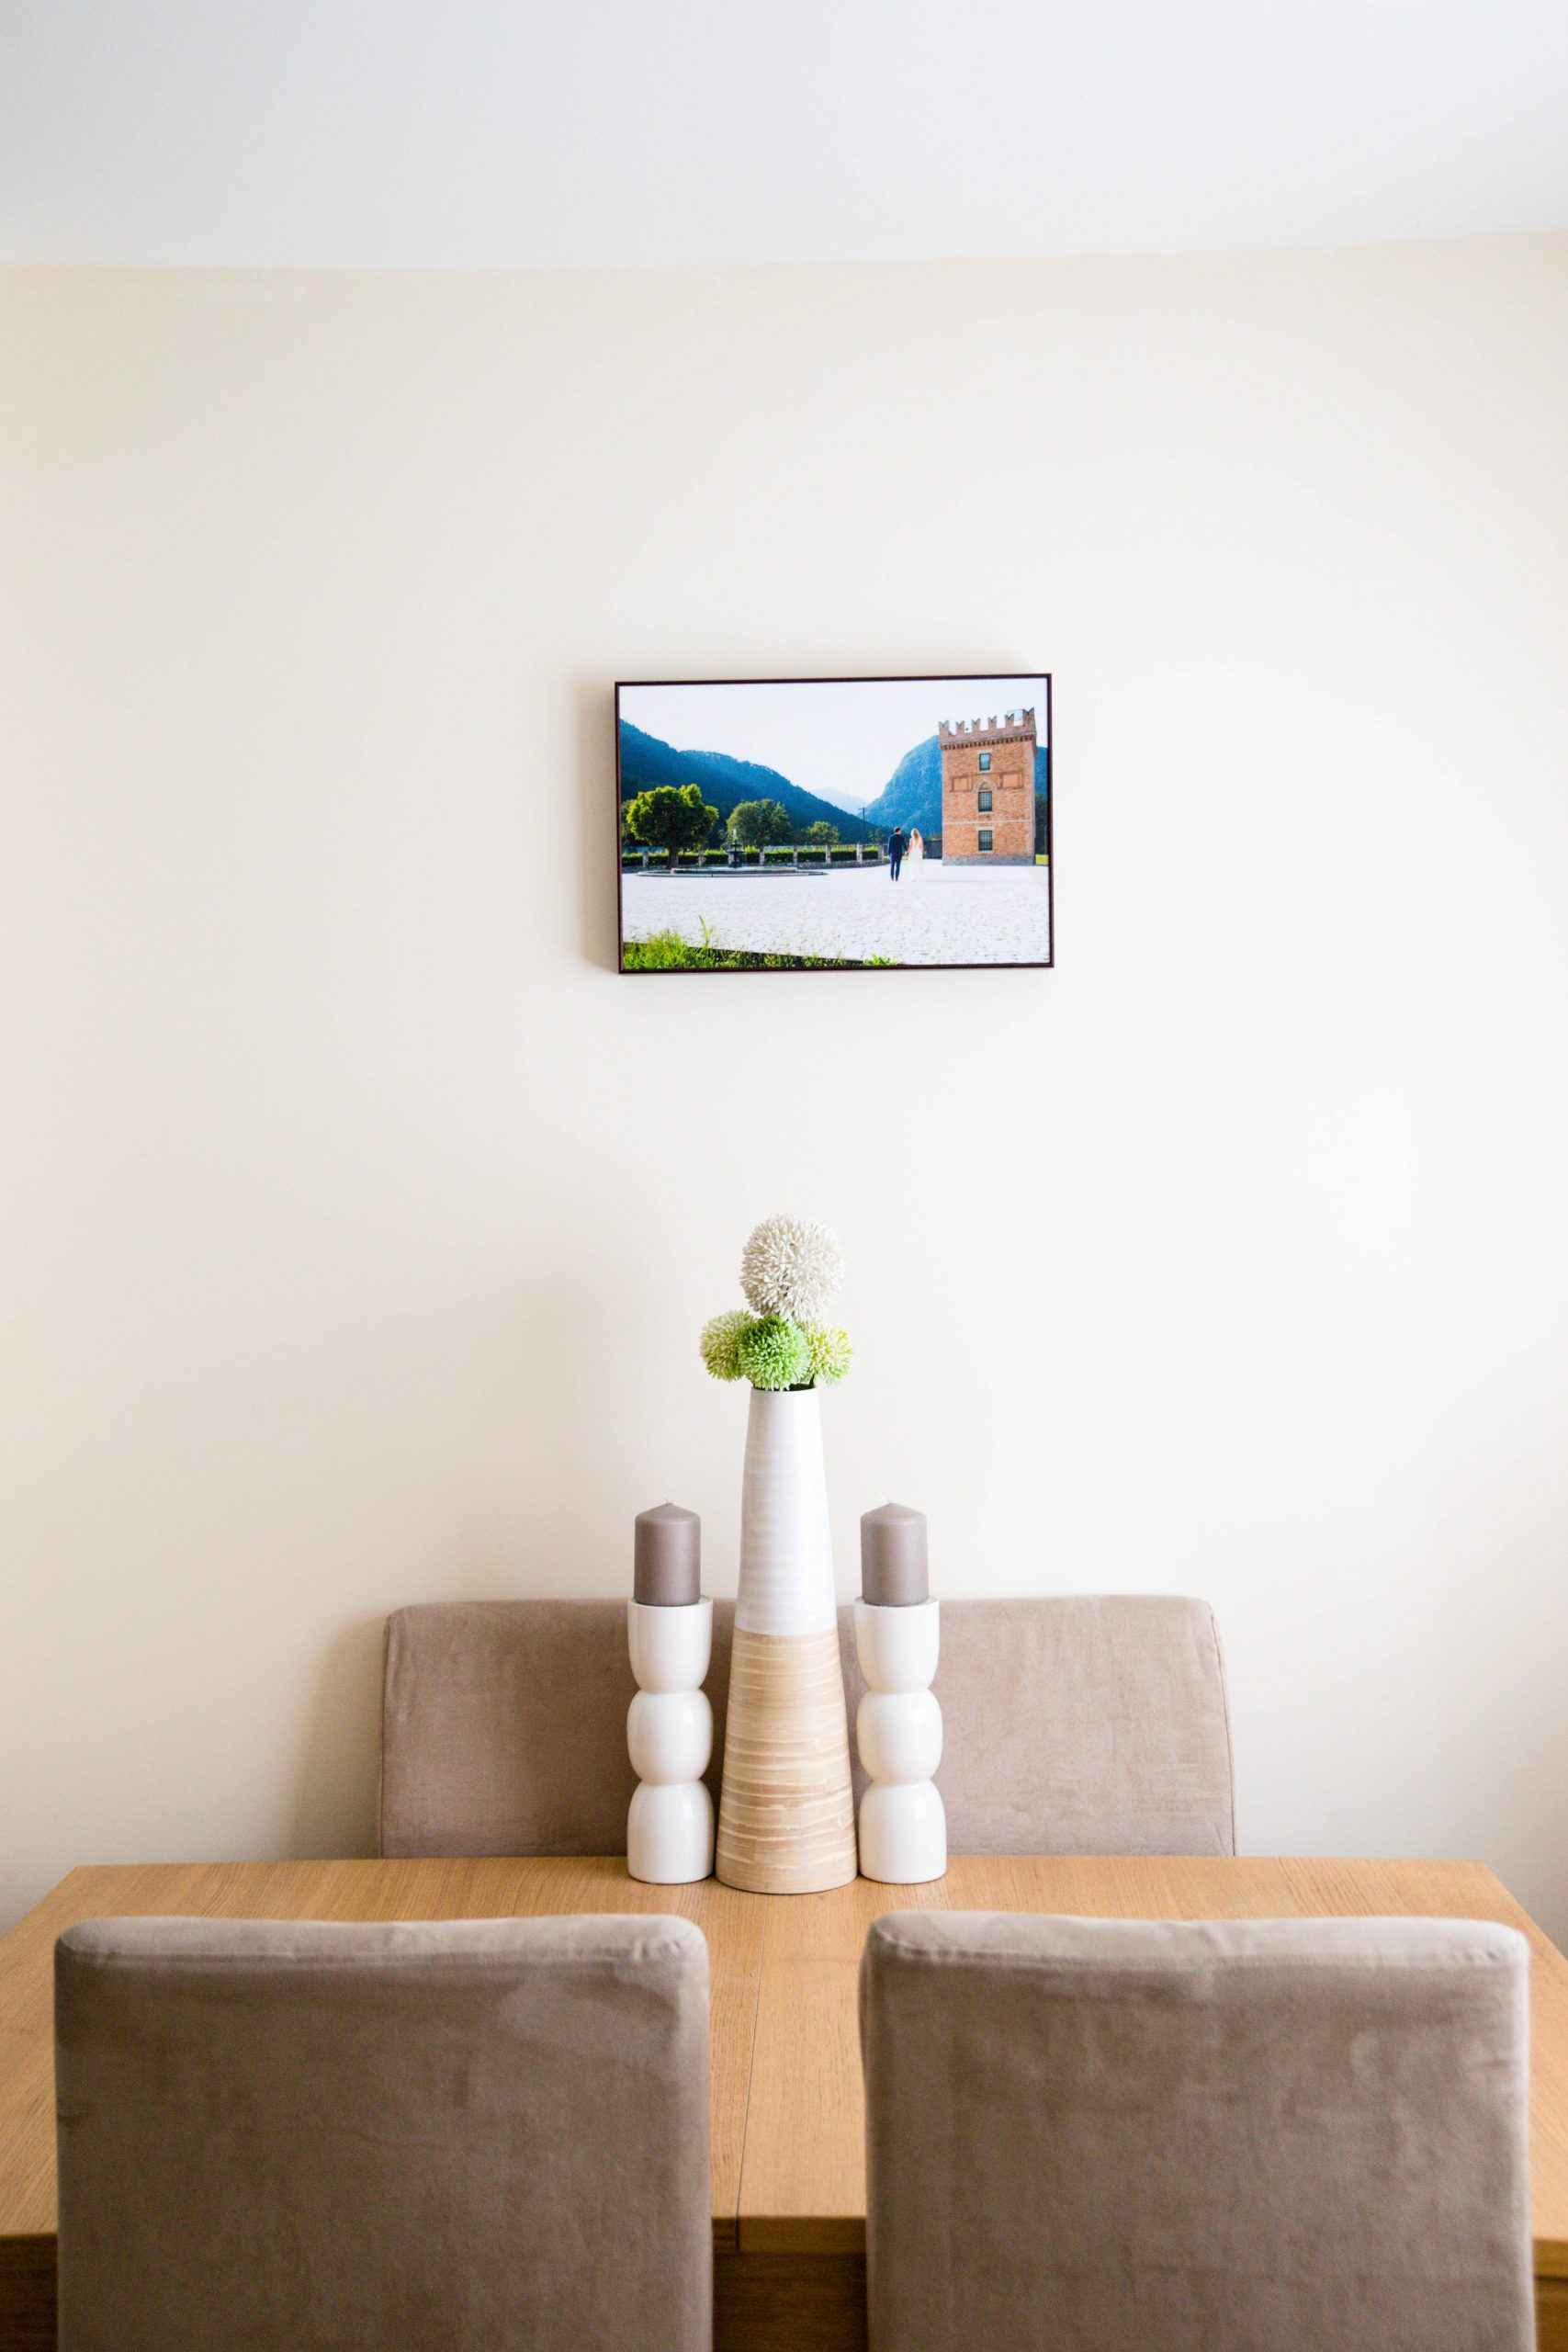 wall art above a table in a home